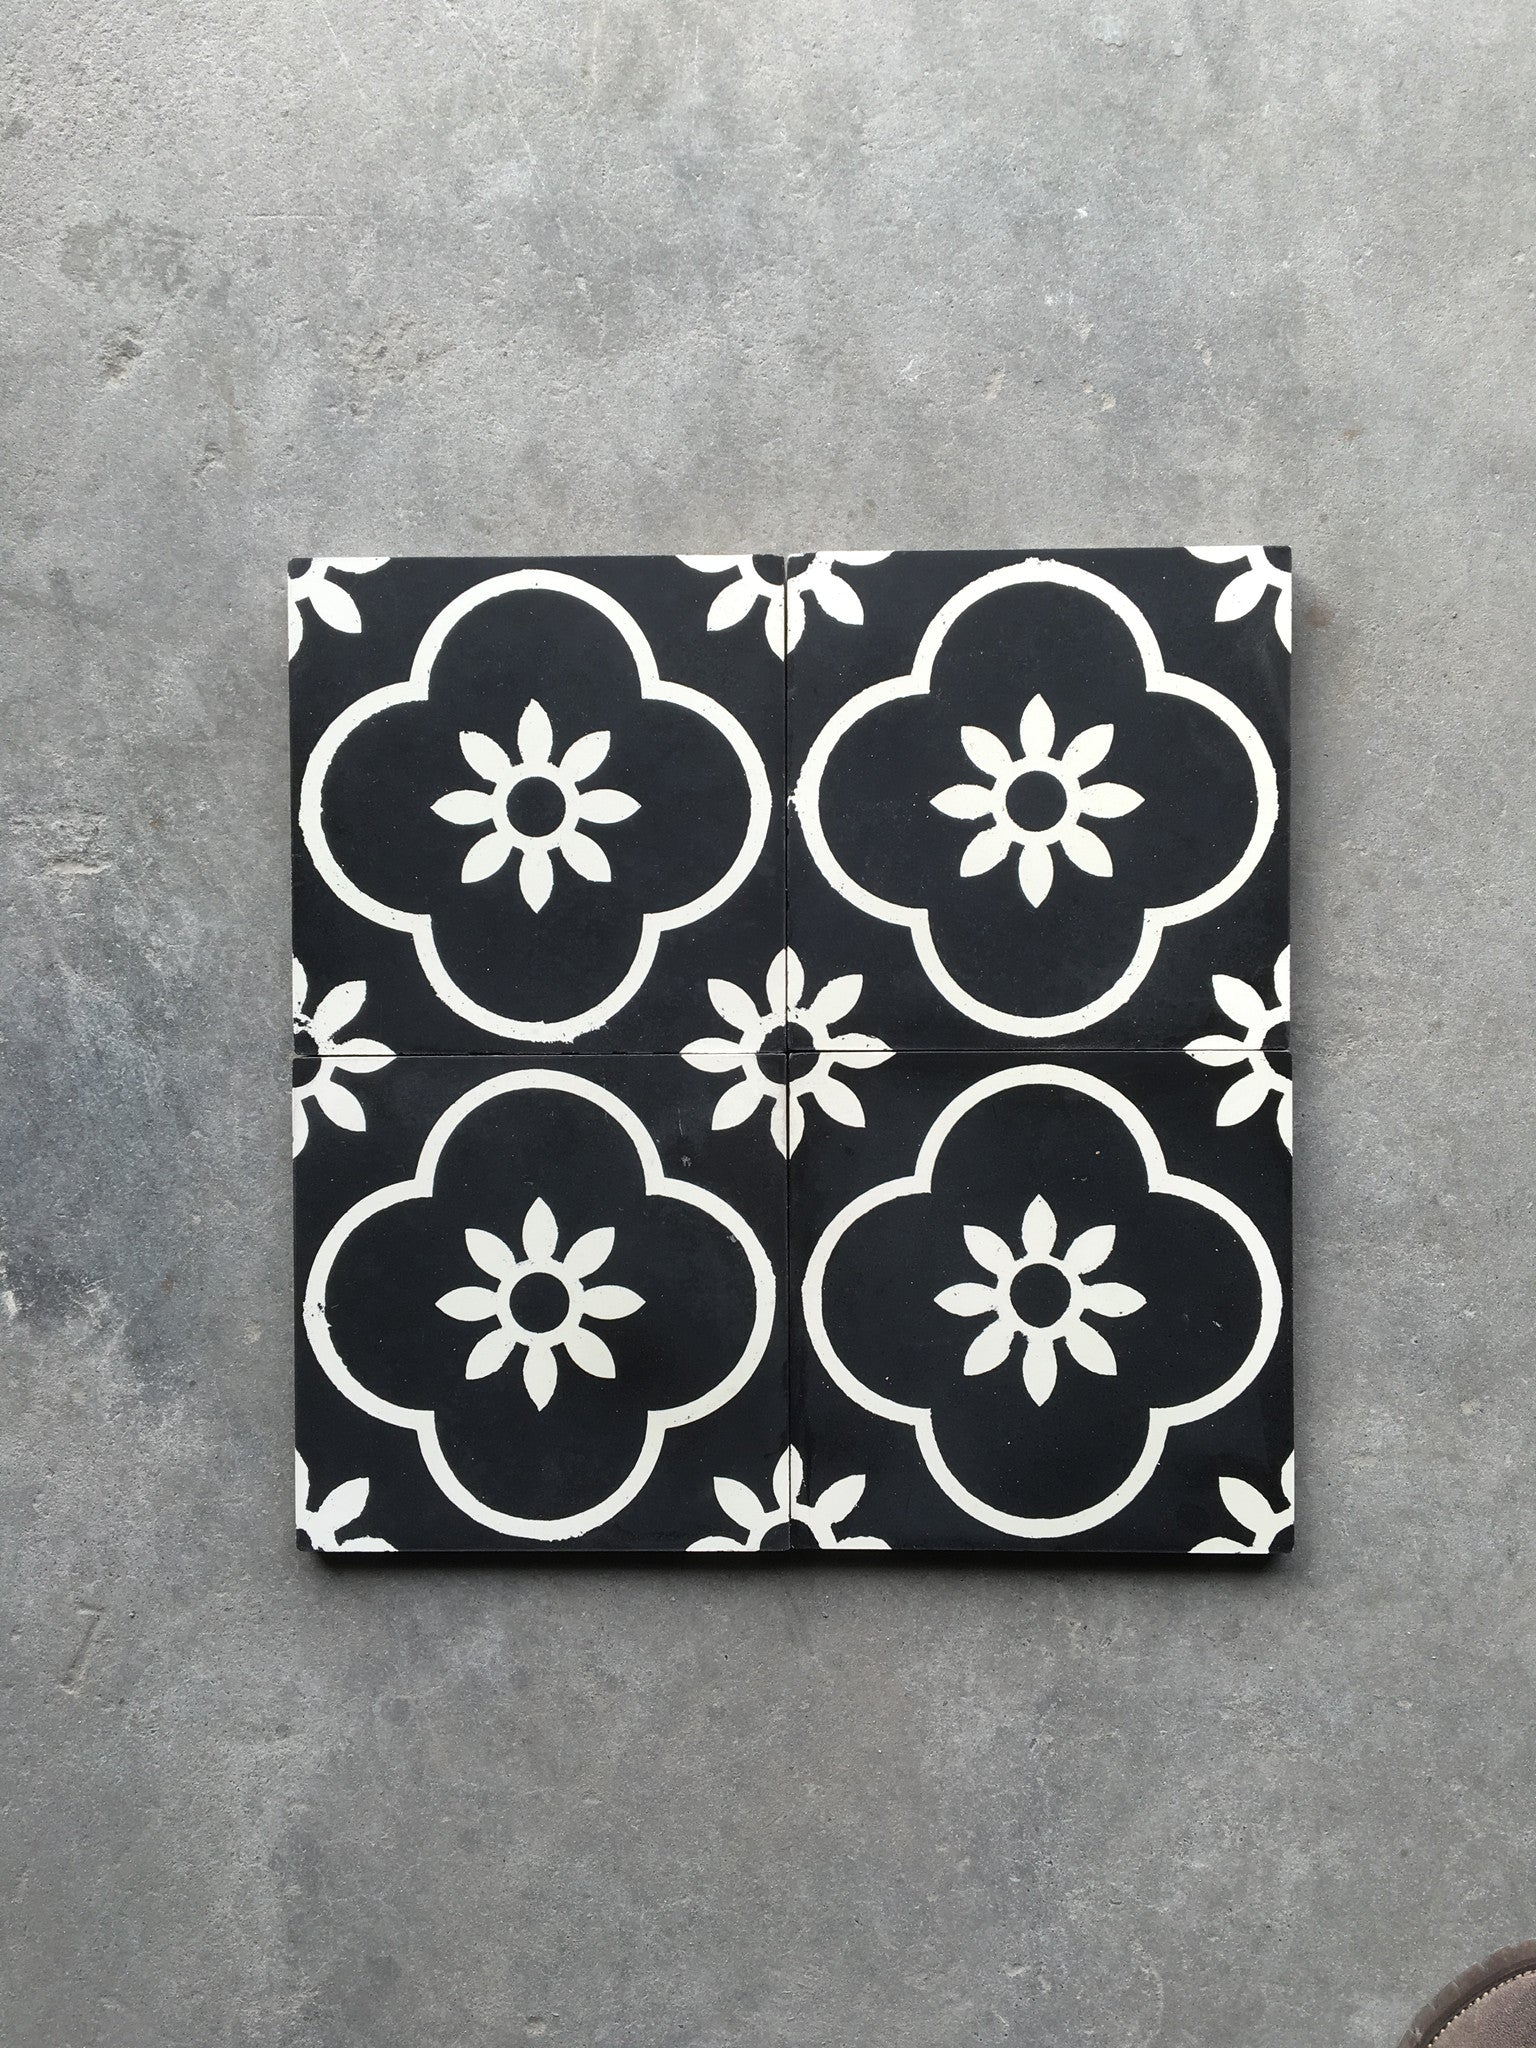 Cement Tile - Sun Blossoms Series